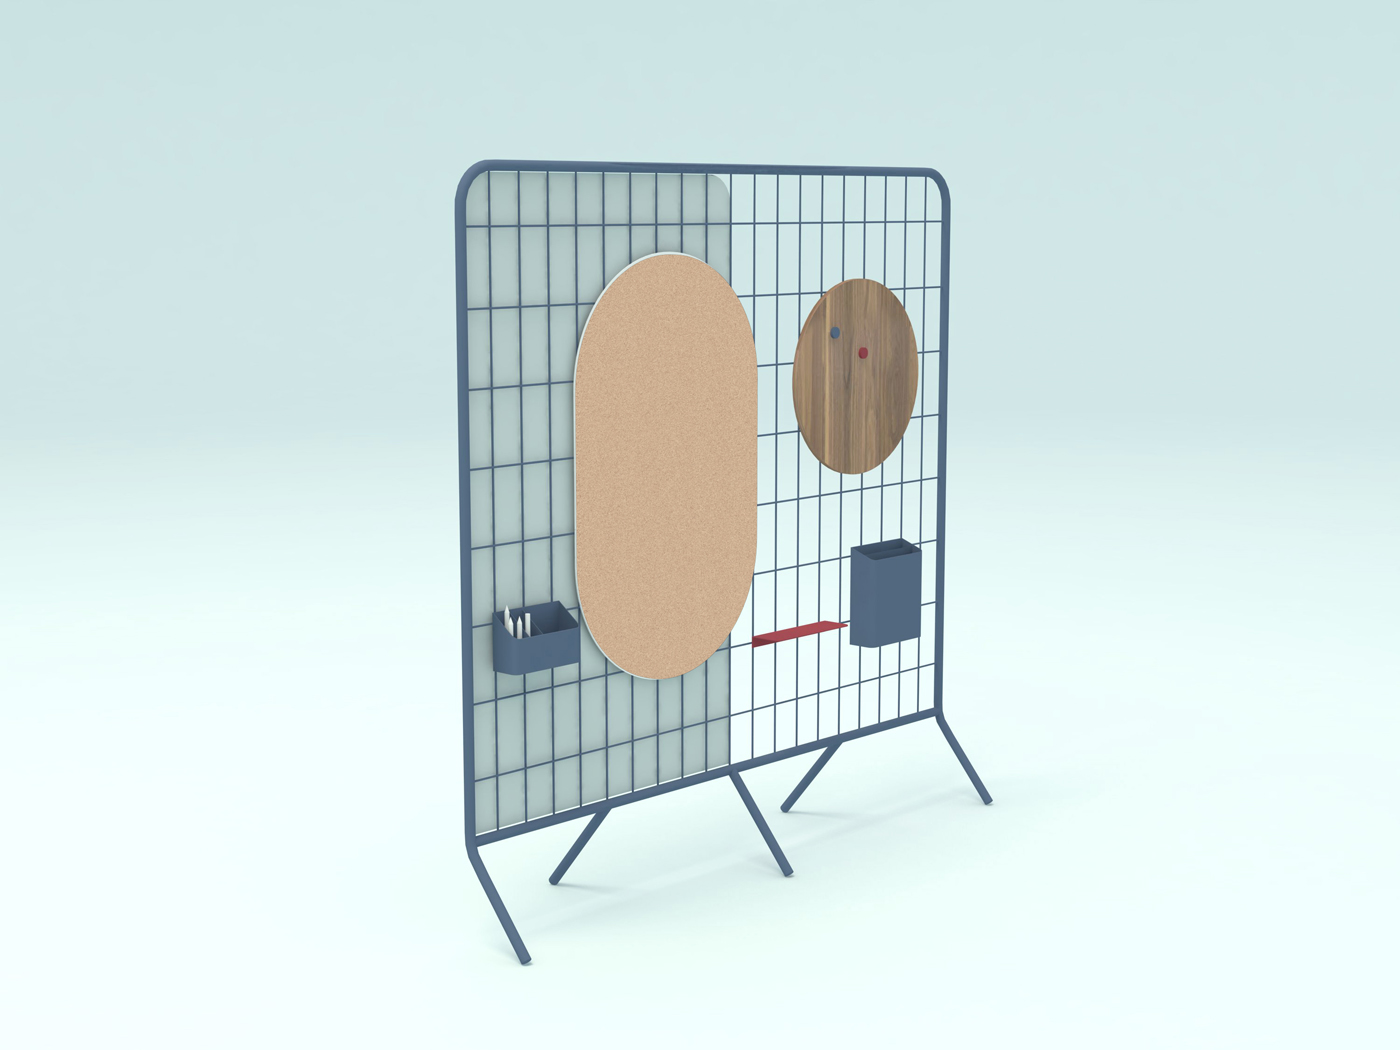 'Net' is a modular partitioning system with sound absorbing properties